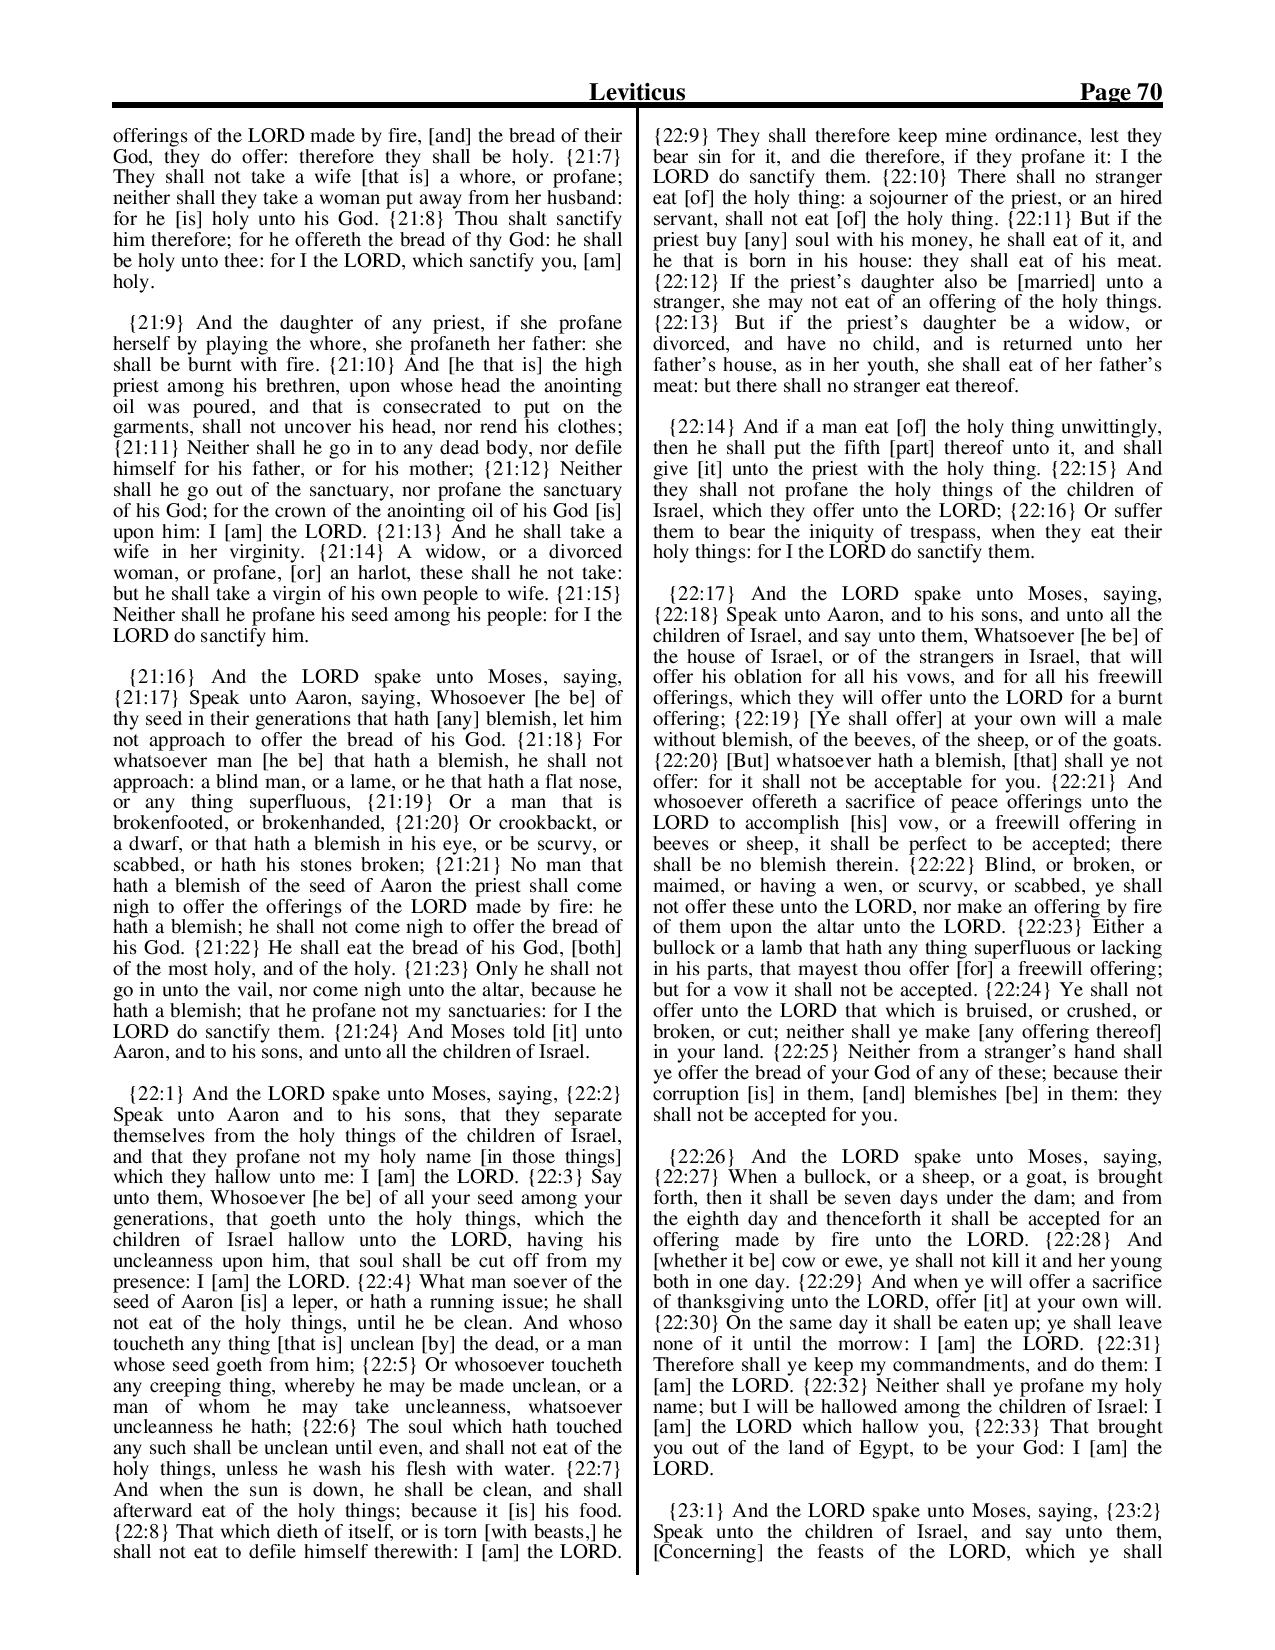 King-James-Bible-KJV-Bible-PDF-page-091